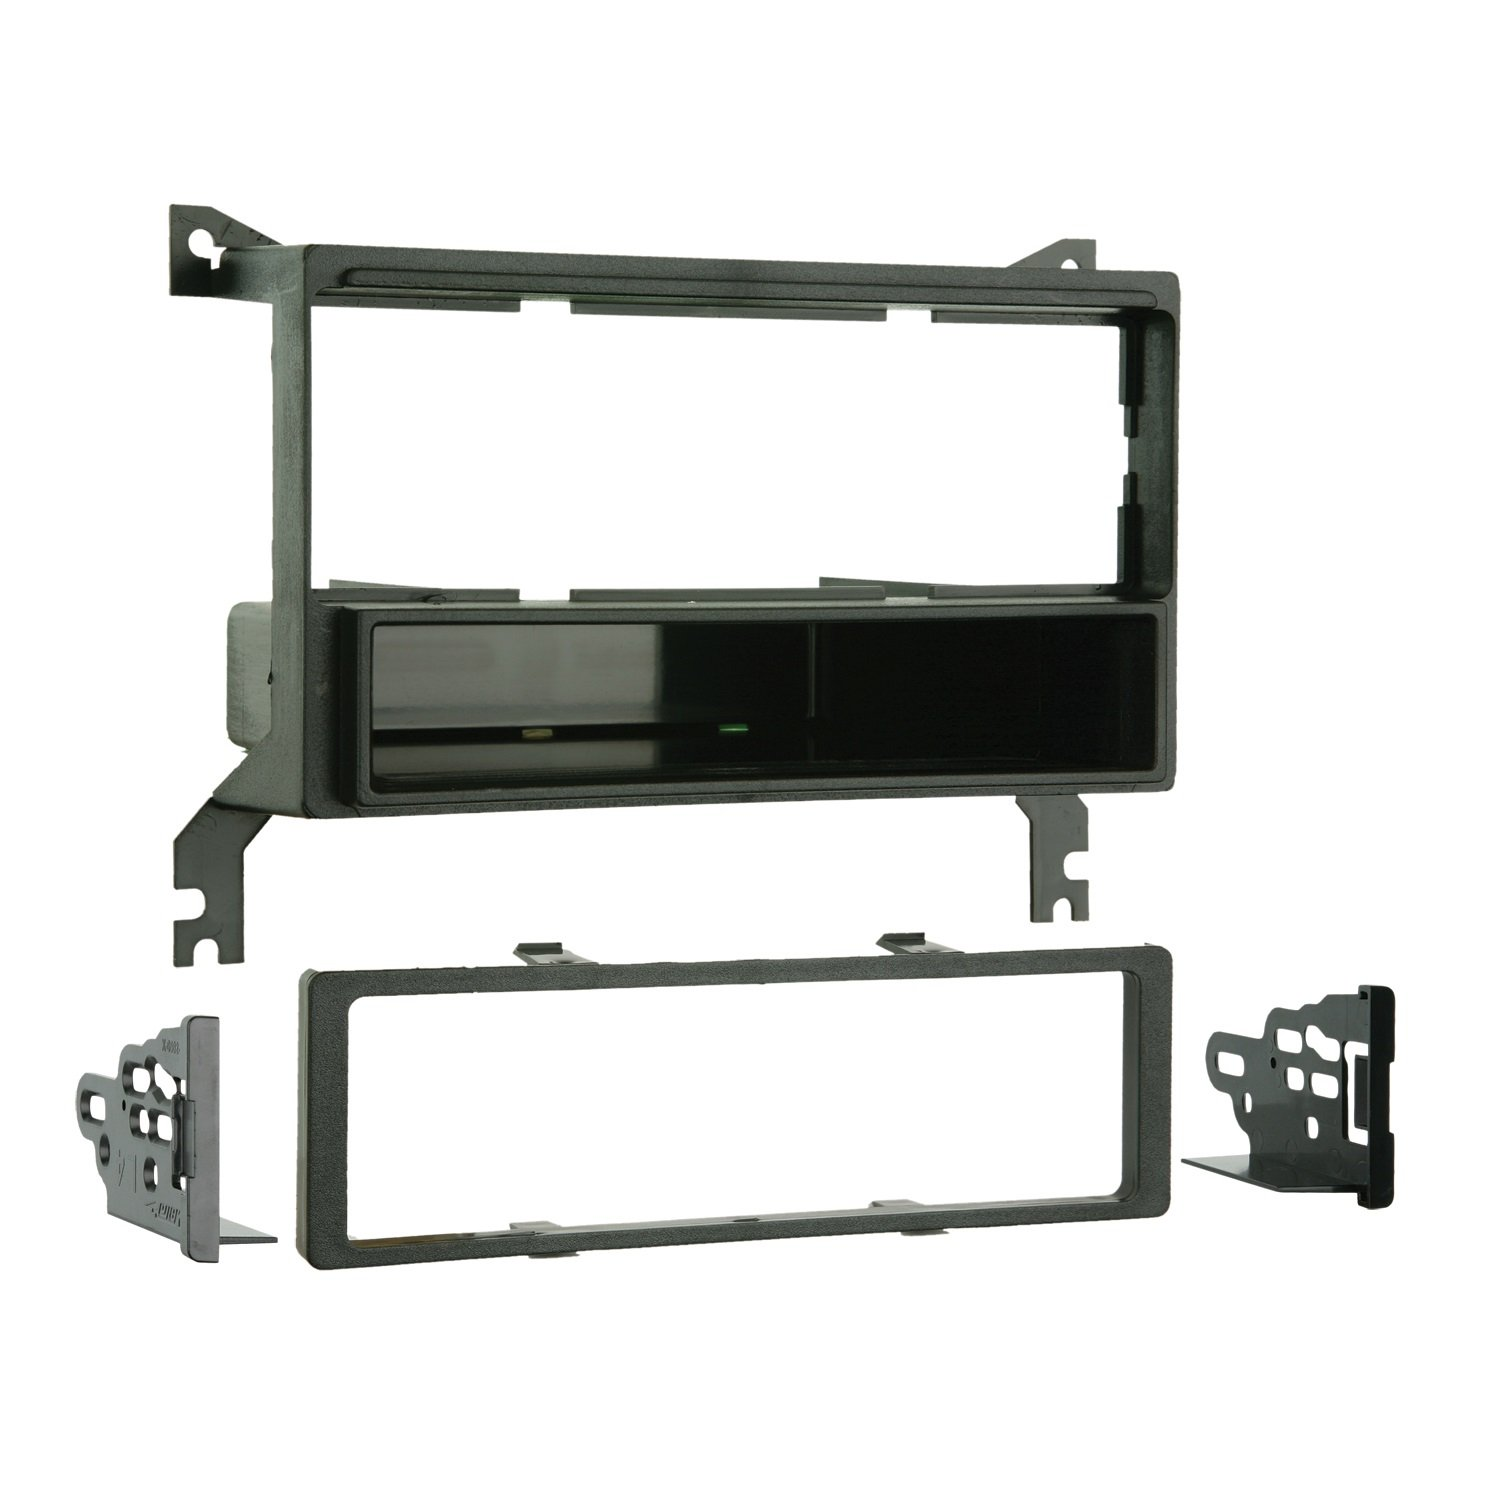 613ySA16kmL._SL1500_ amazon com metra 99 7315 hyundai tucson 2005 up dash kit car  at bakdesigns.co